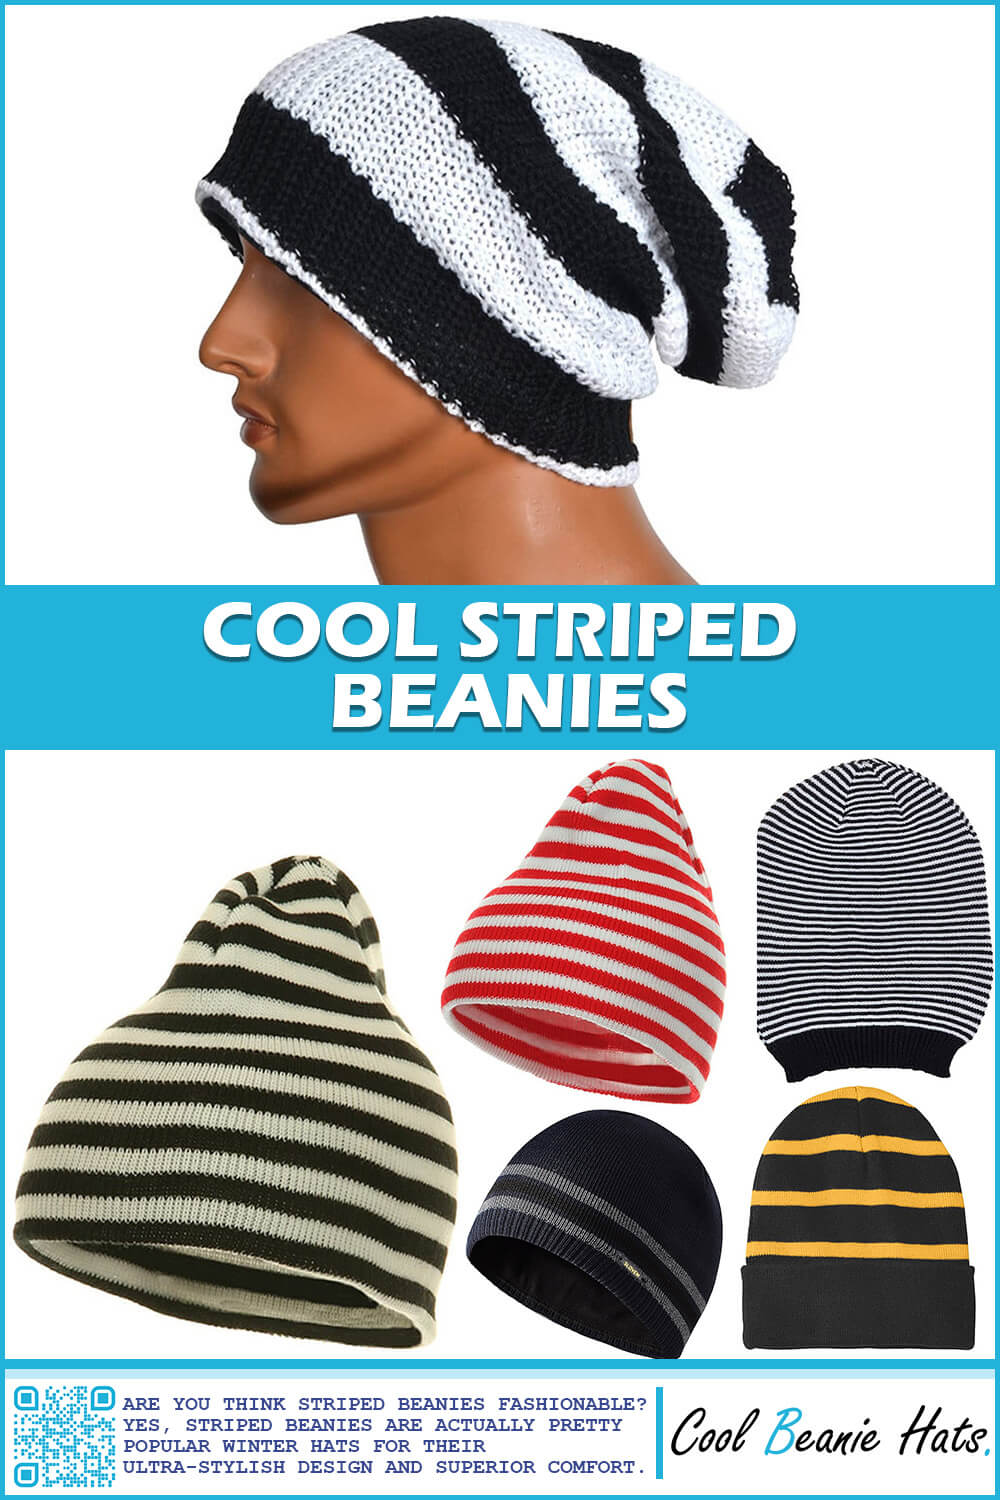 beanies with striped